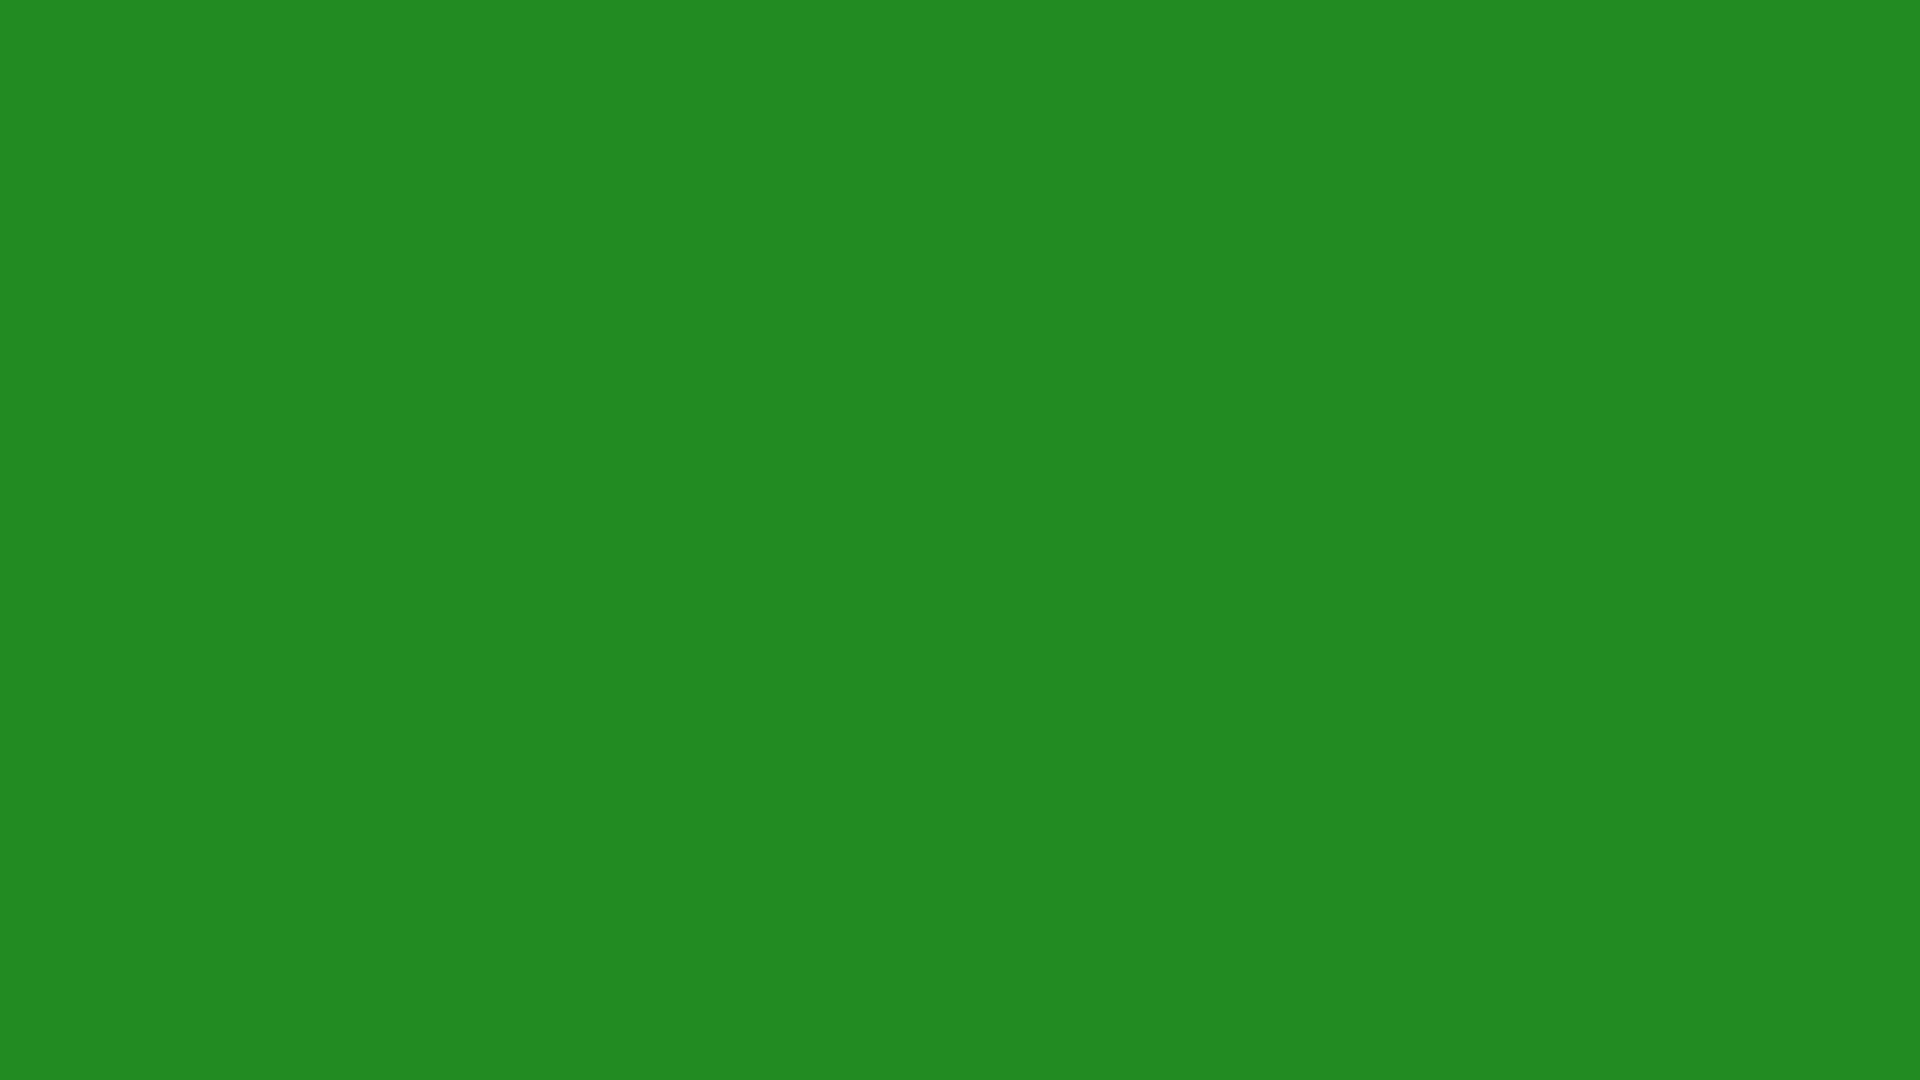 1920x1080 Forest Green For Web Solid Color Background